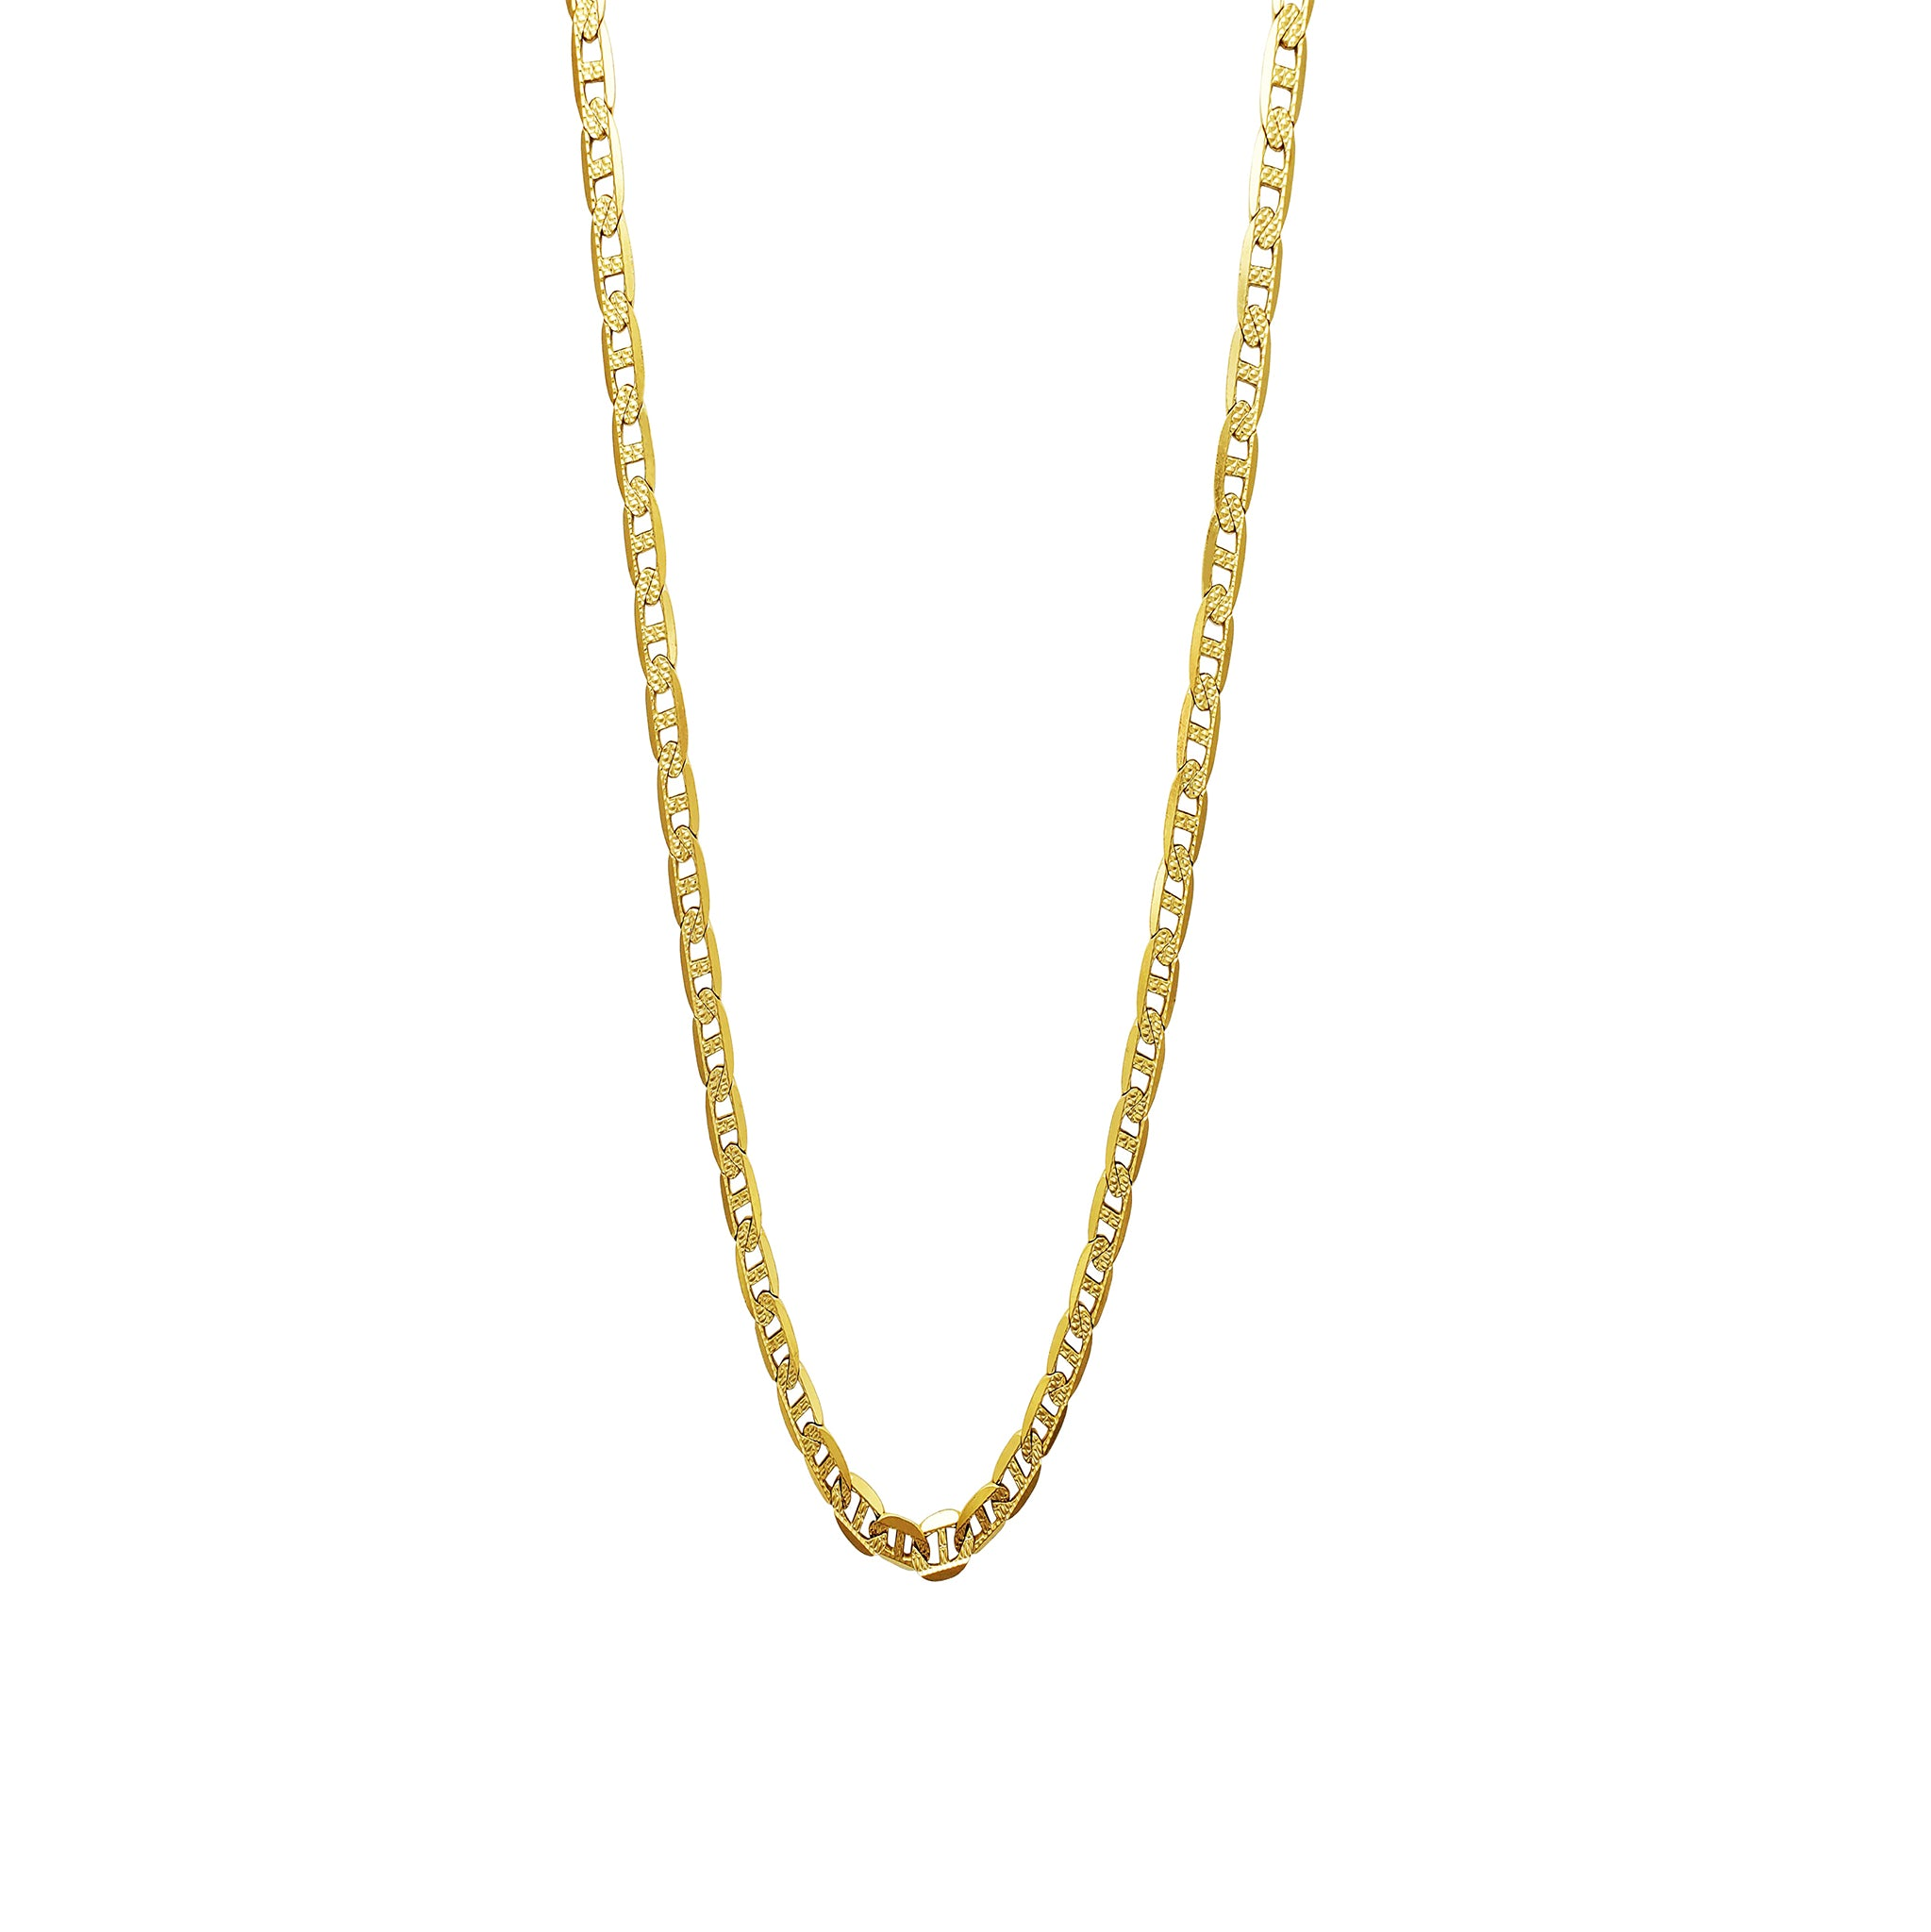 Carved Mariner/Gucci Chain (14K)